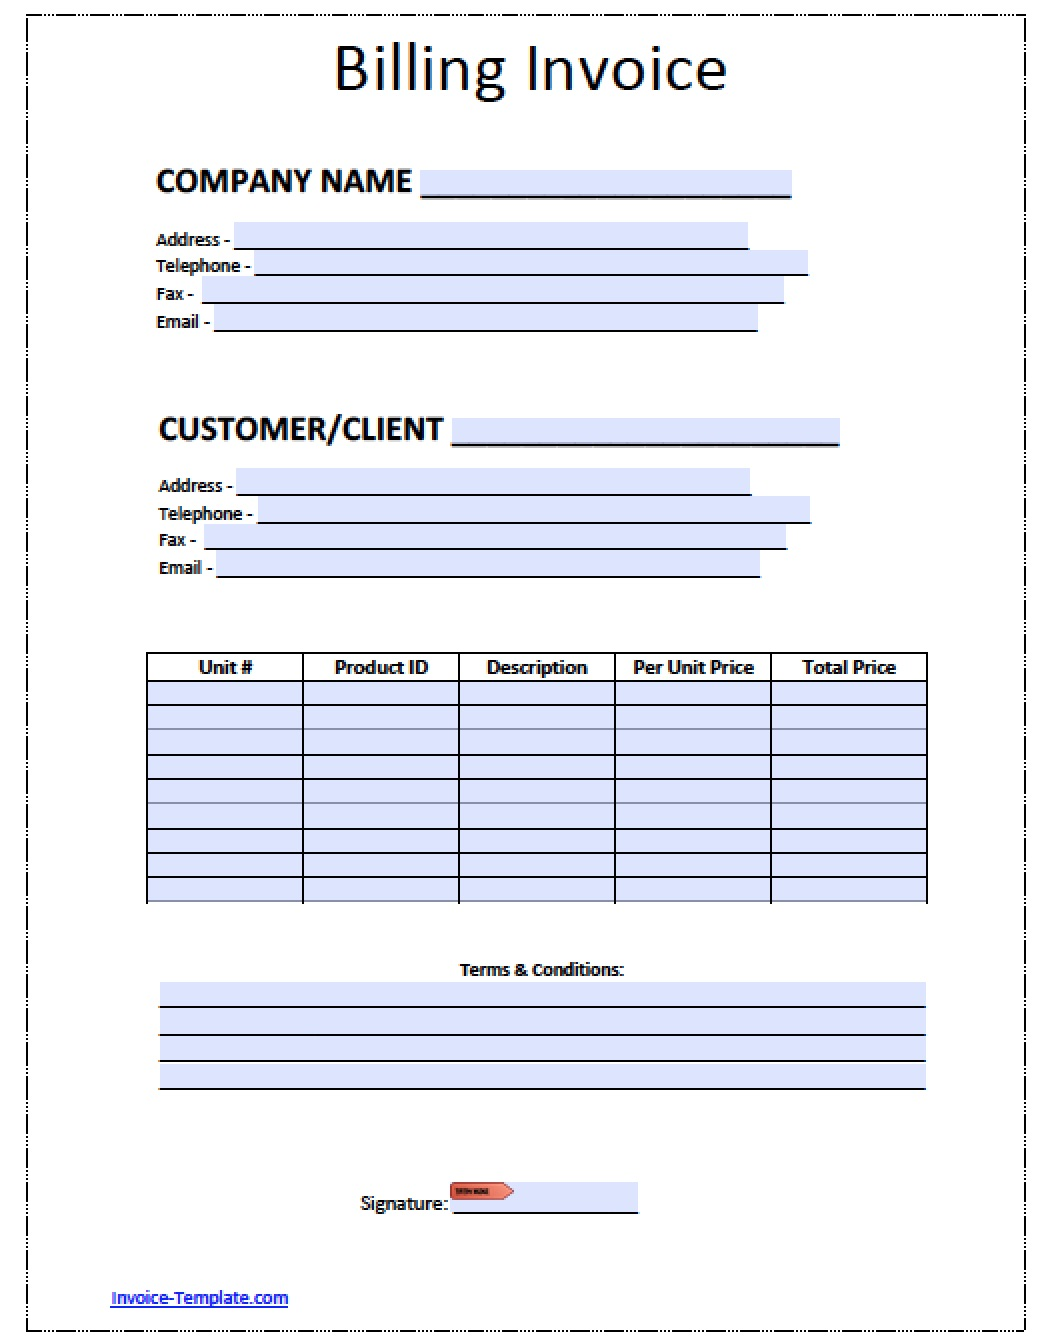 Free Billing Invoice Template Excel PDF Word Doc - Excel invoice templates free download